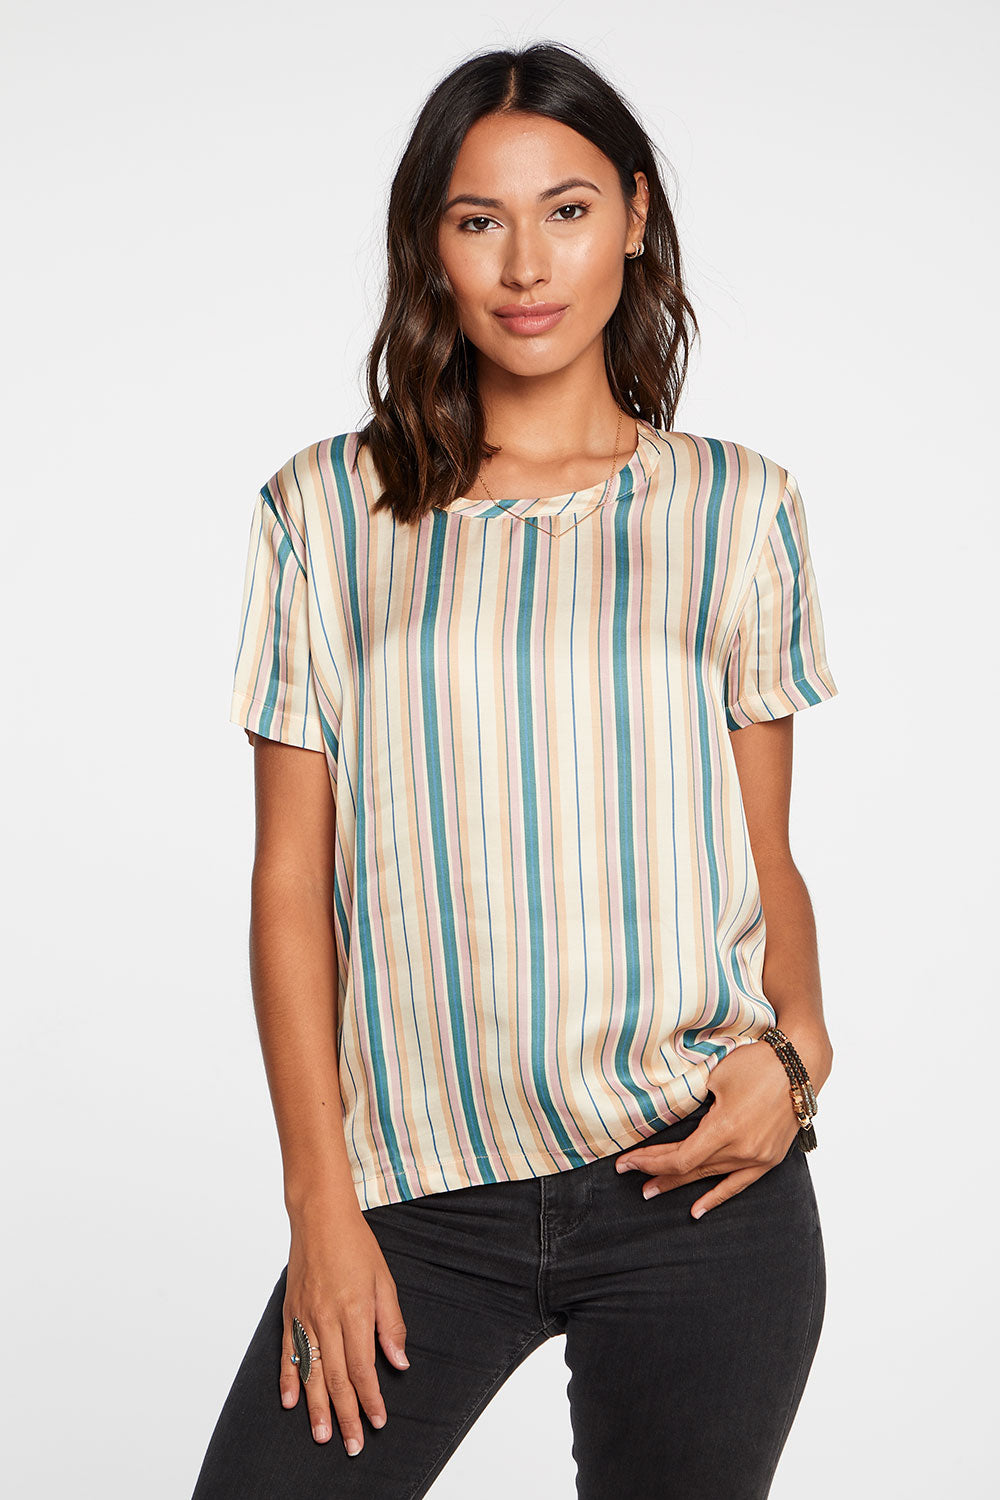 Silky Basics Short Sleeve Easy Tee in Stripe